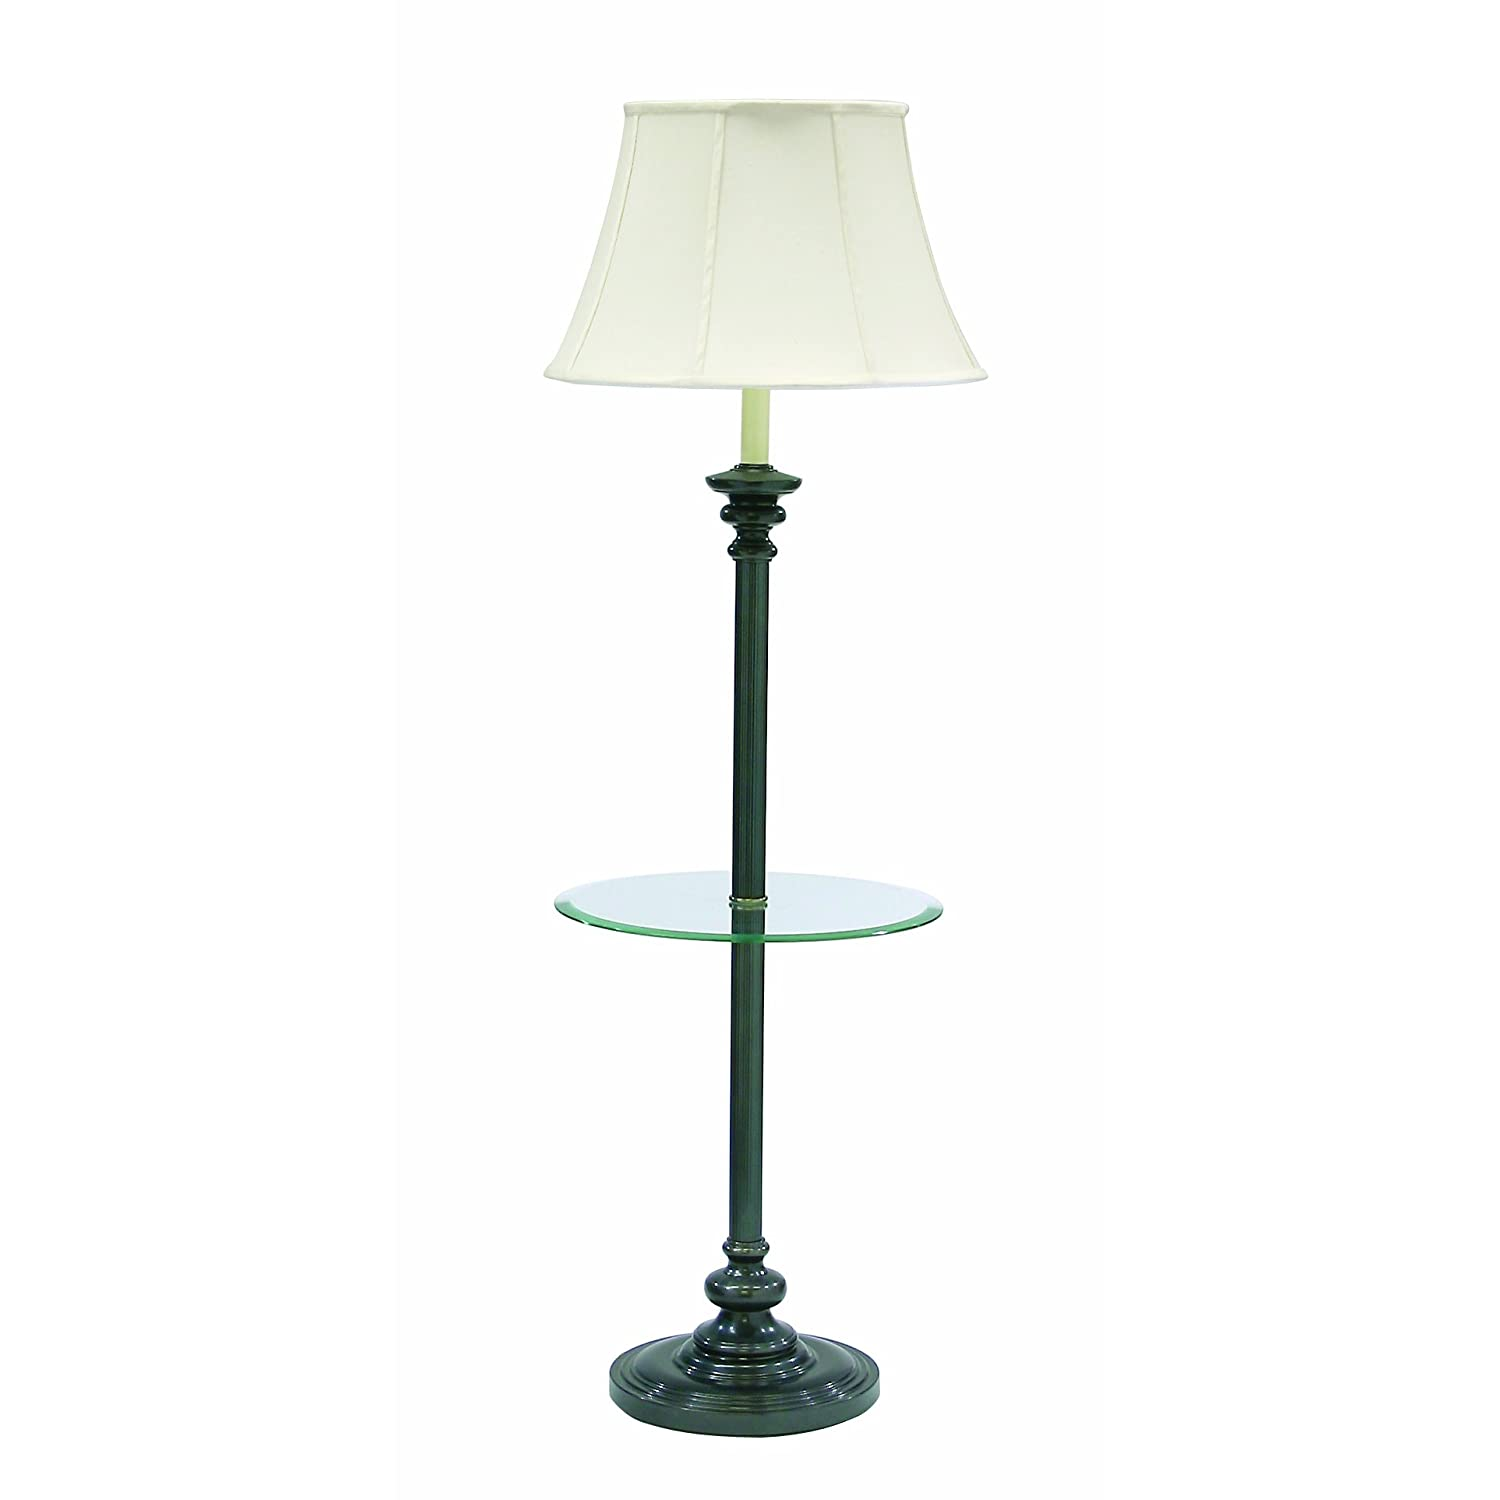 Floor lamp with table attached for Floor lamp with table